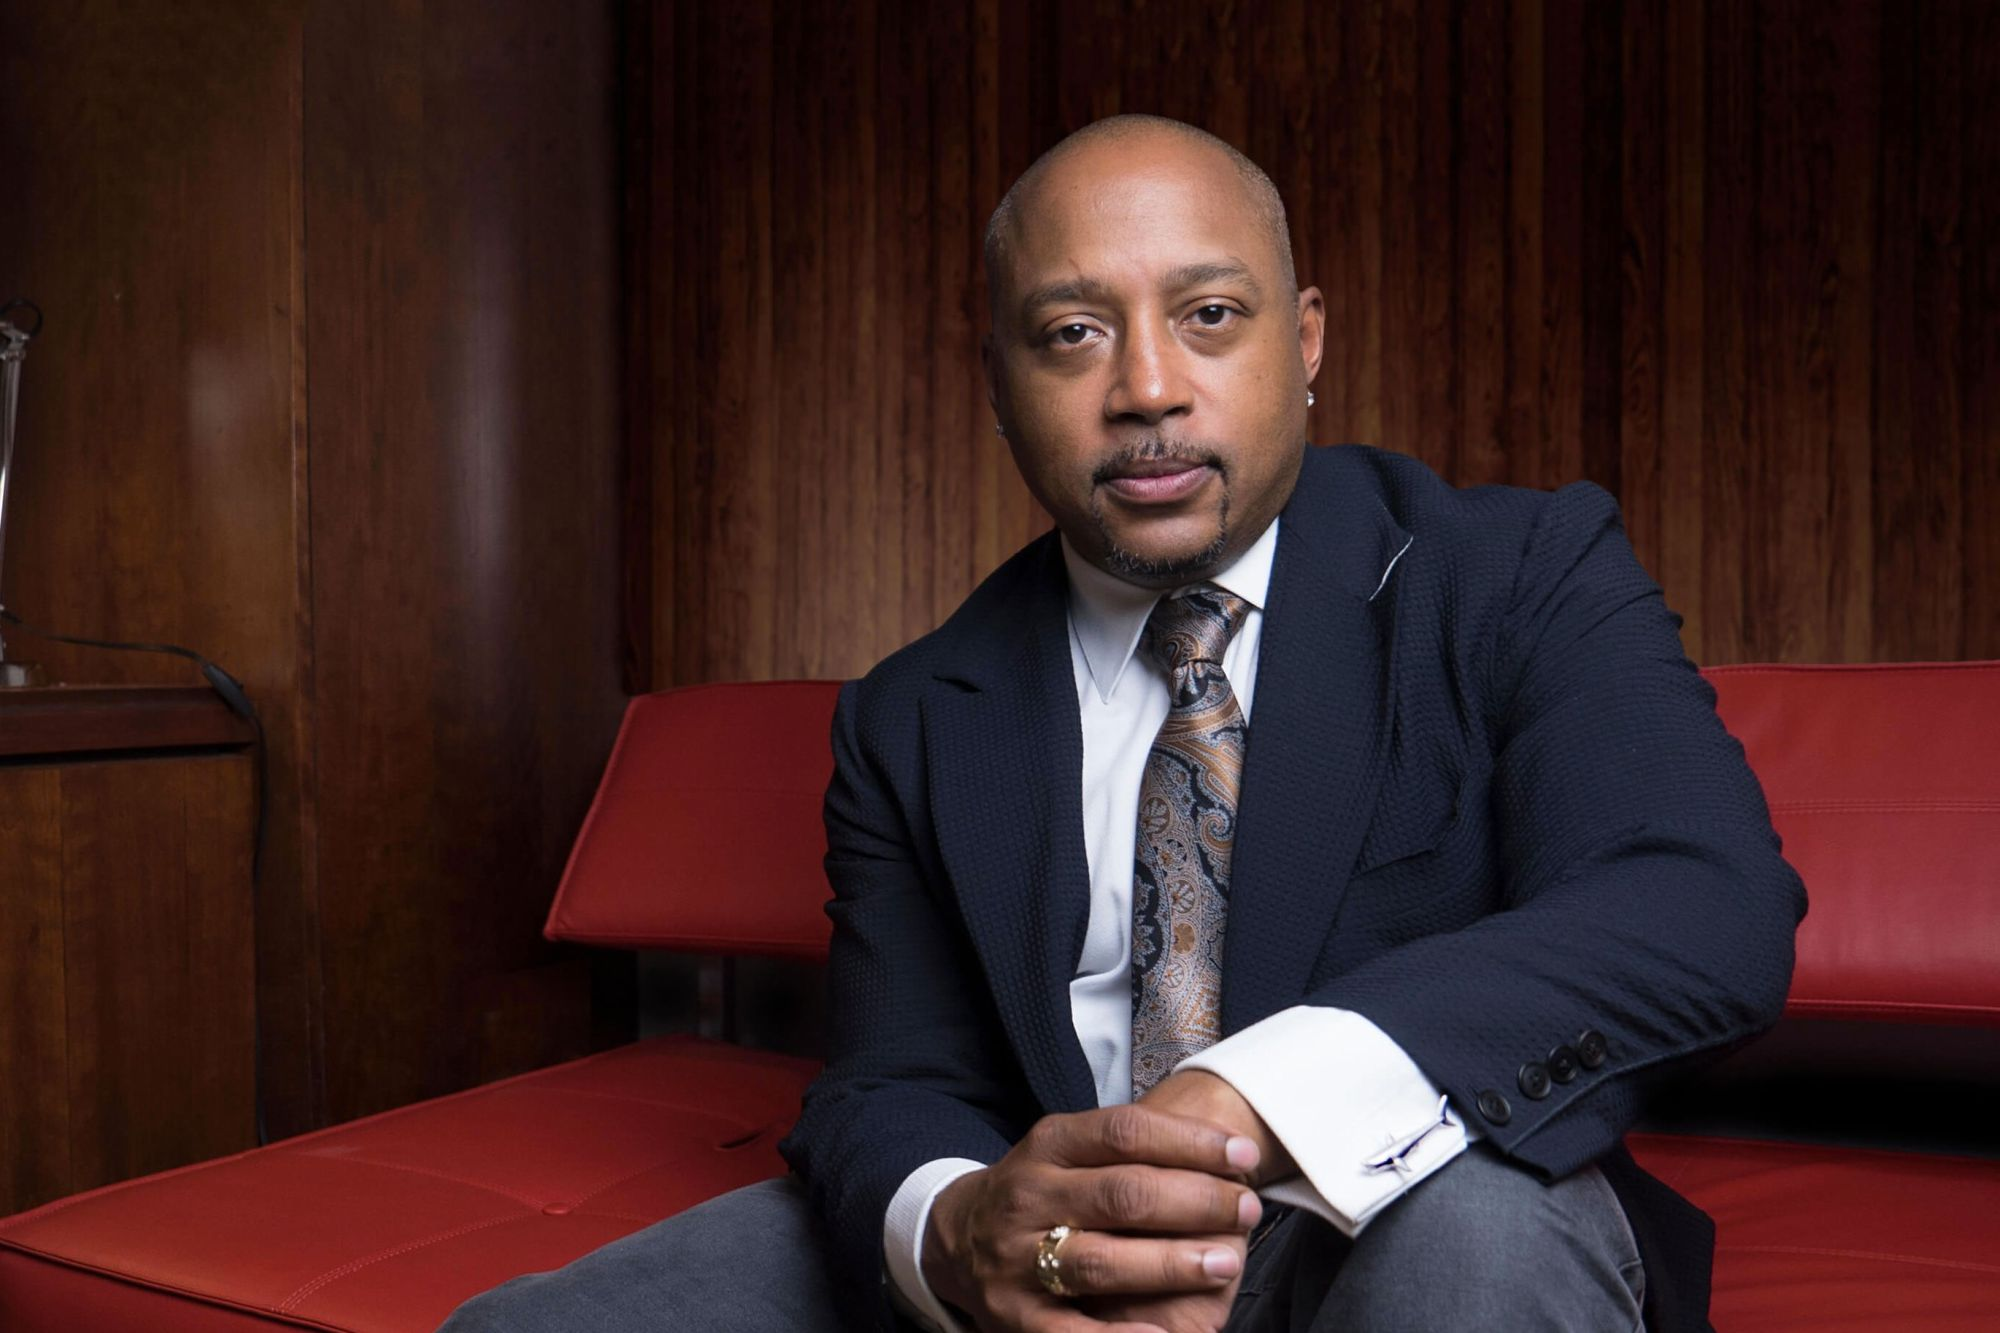 Daymond John: 5 Reasons Why Education Is the Key to Your Success